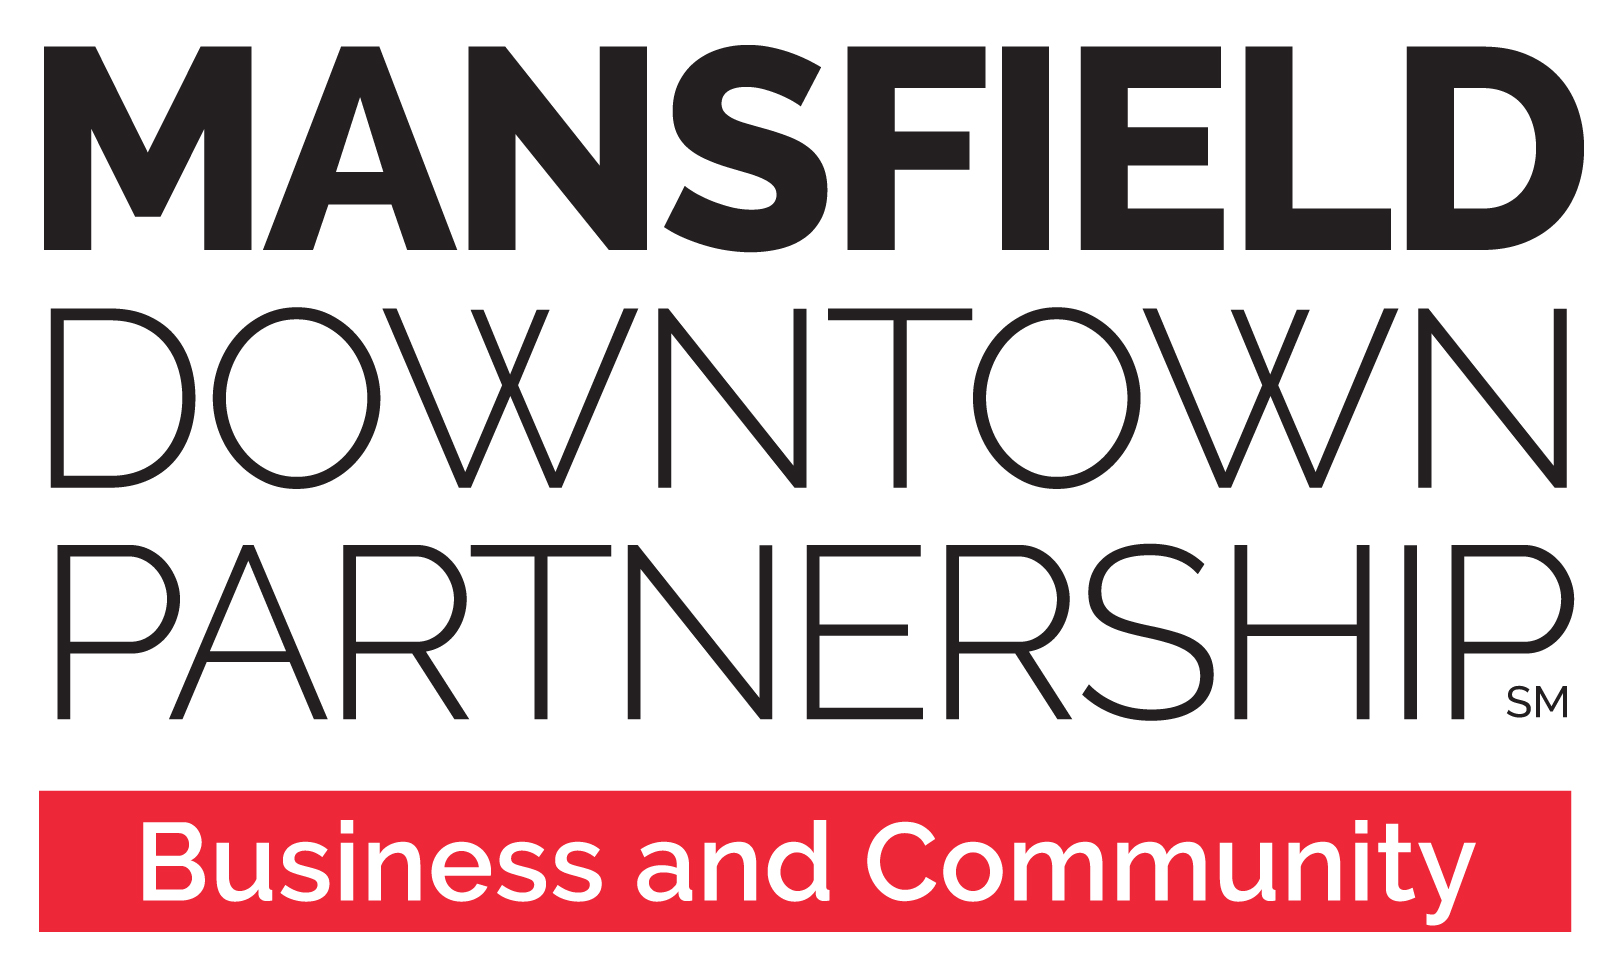 Mansfield Downtown Partnership, Inc.